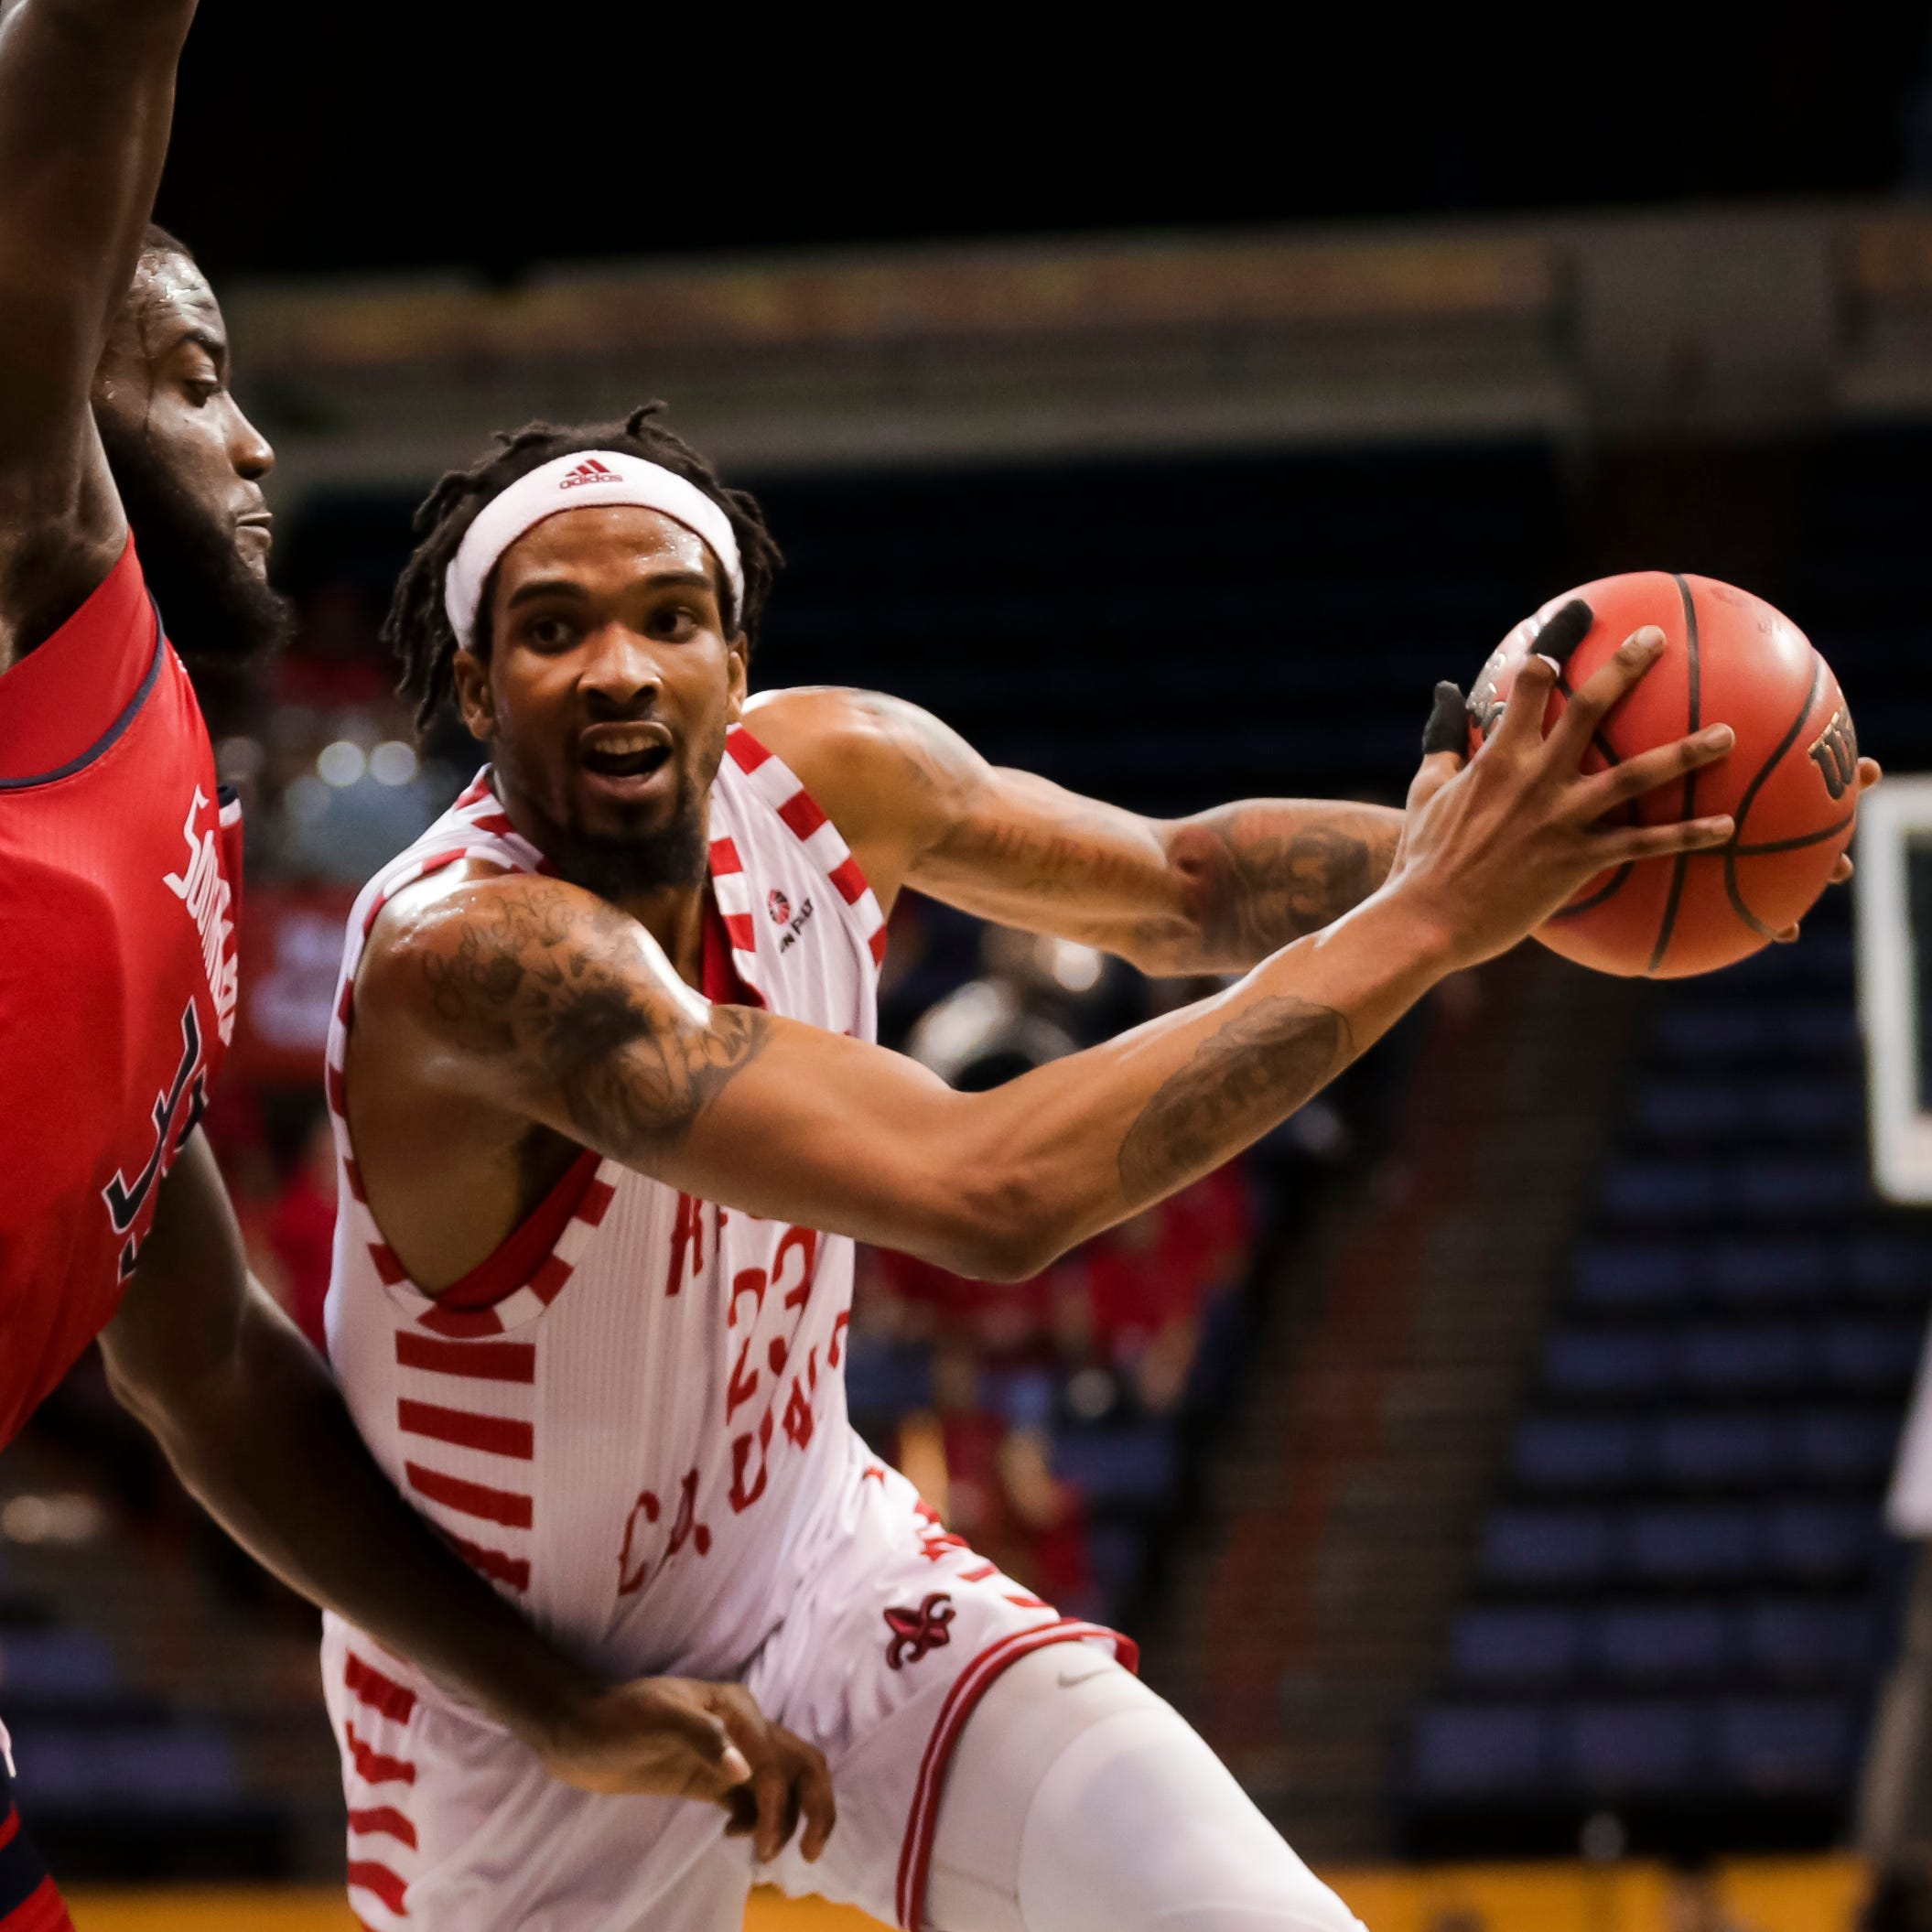 UL forward Gant will get a shot at playing on the next level